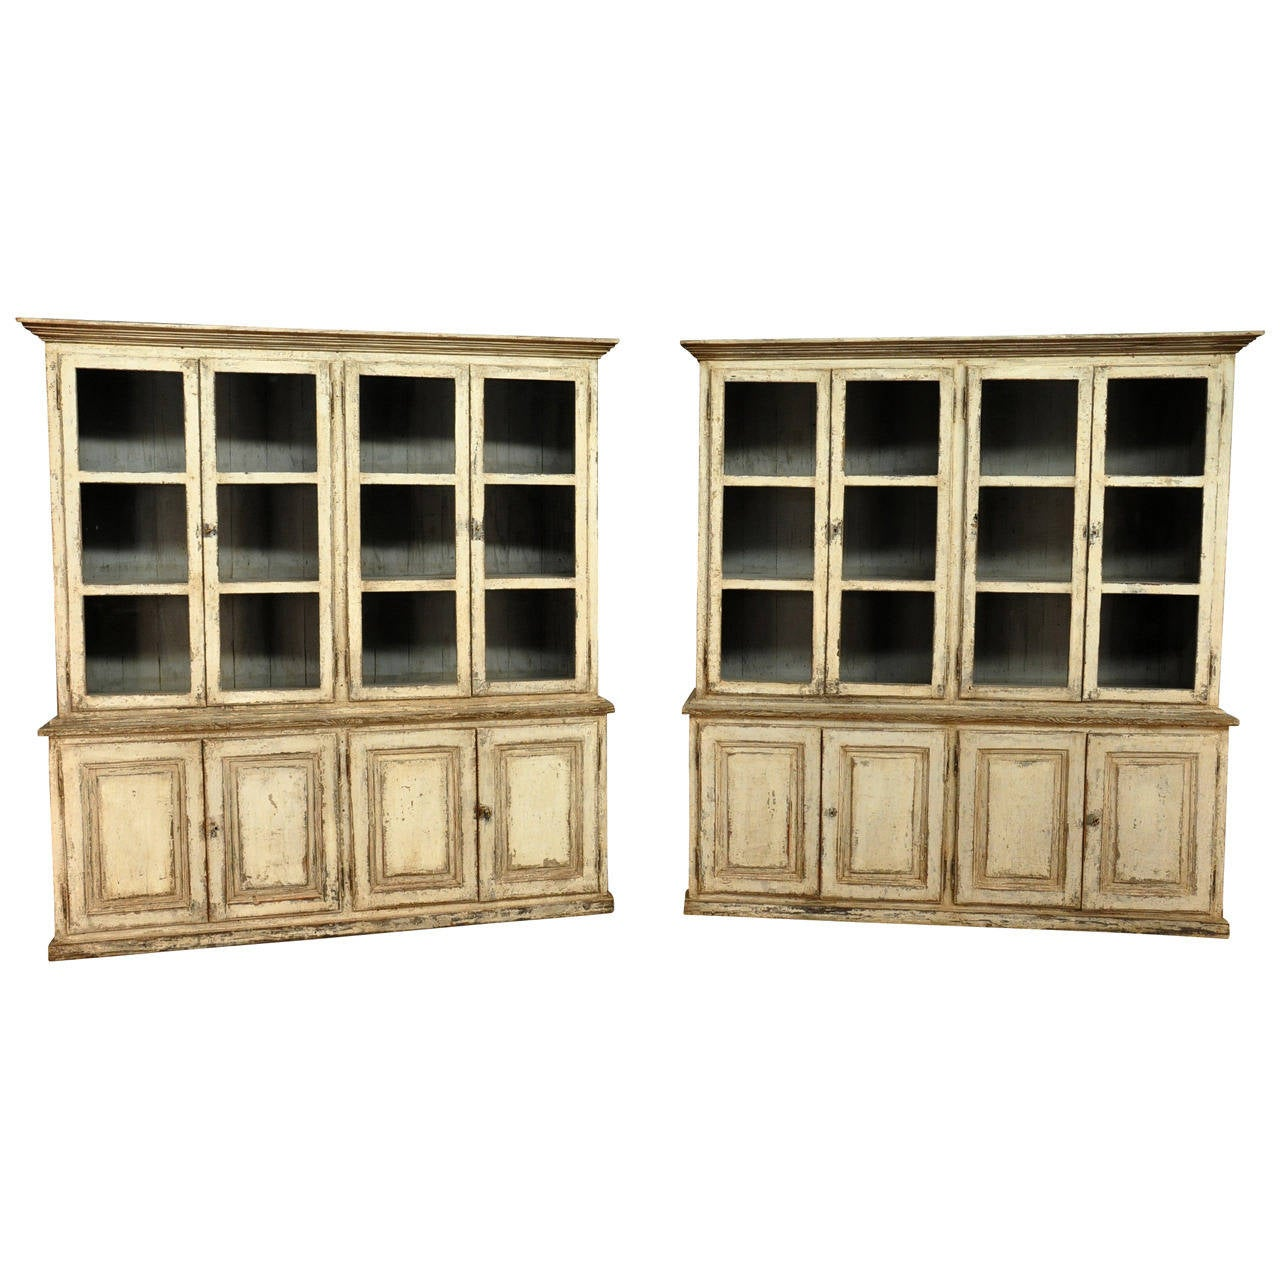 19th Century Bookcases In Solid Painted Wood From Portugal At 1stdibs. Full resolution  file, nominally Width 1280 Height 1280 pixels, file with #997F32.